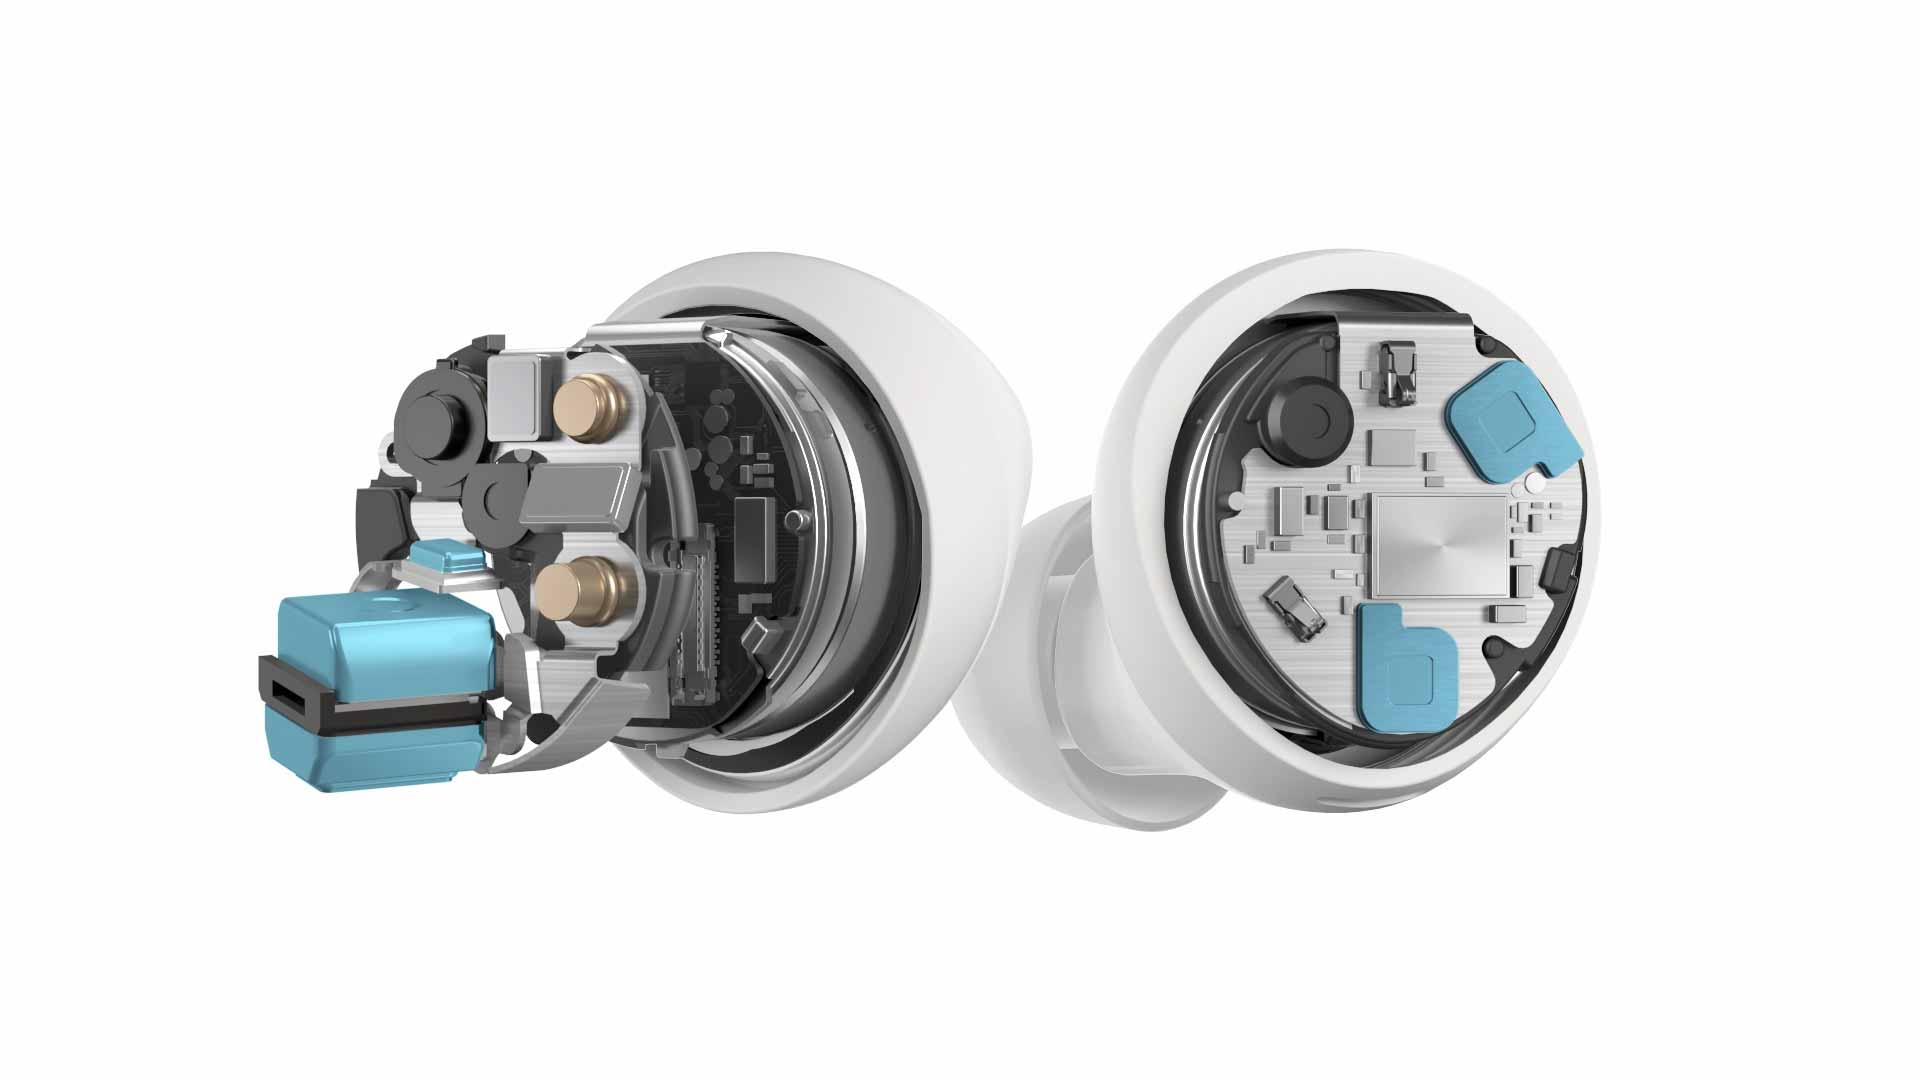 The inside components of a pair of white Galaxy Buds Plus wireless earphones are pictured in front of a white background.